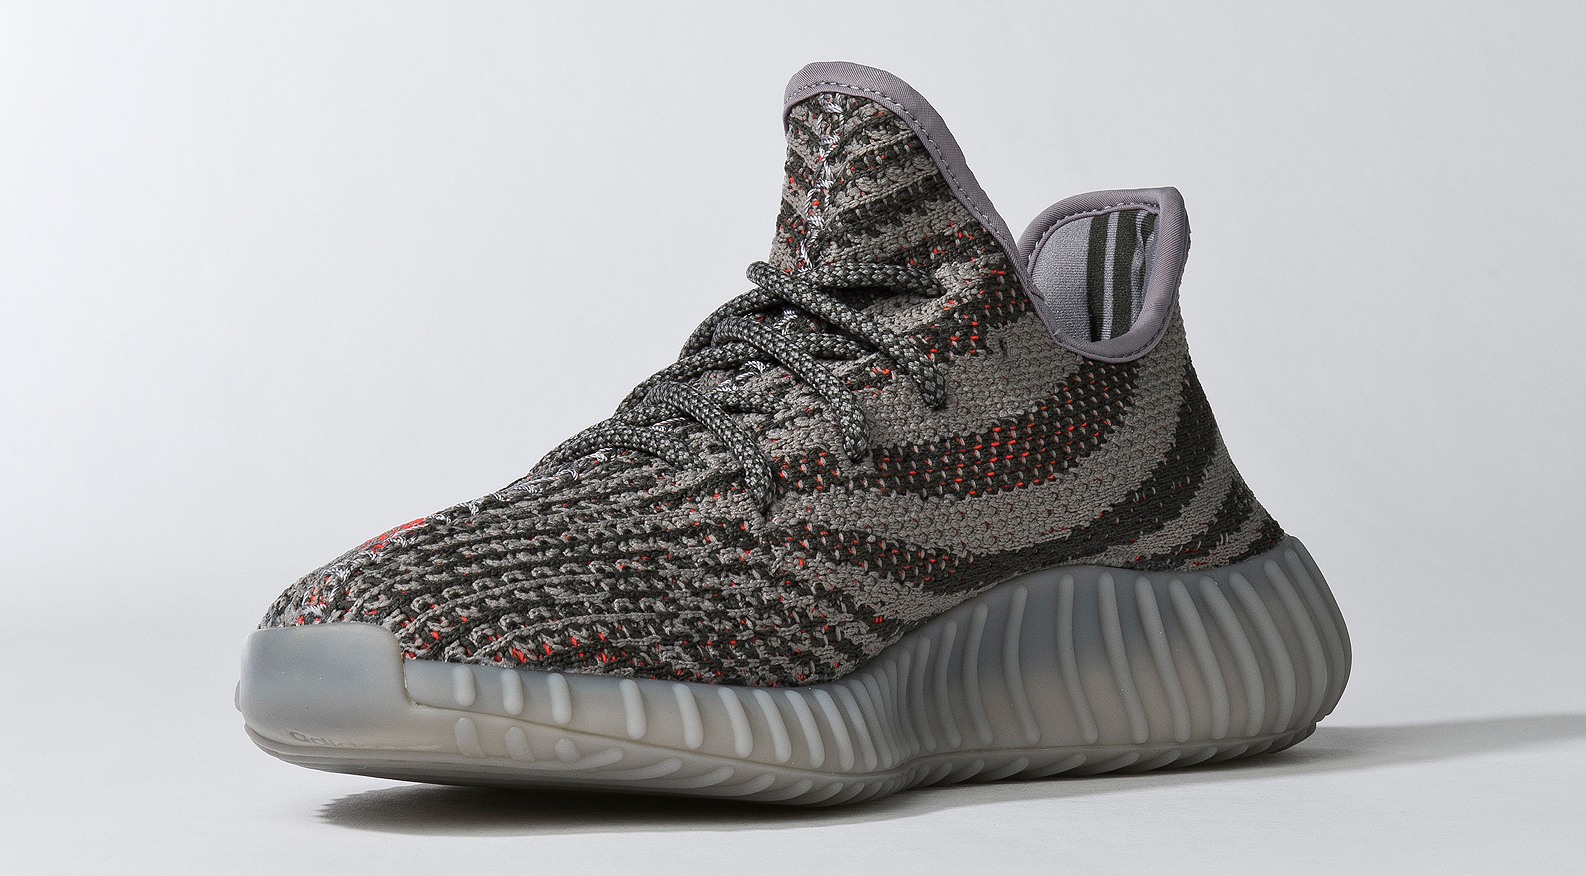 Adidas Yeezy 350 Boost V2 Bb1826 Release Date Sole Collector